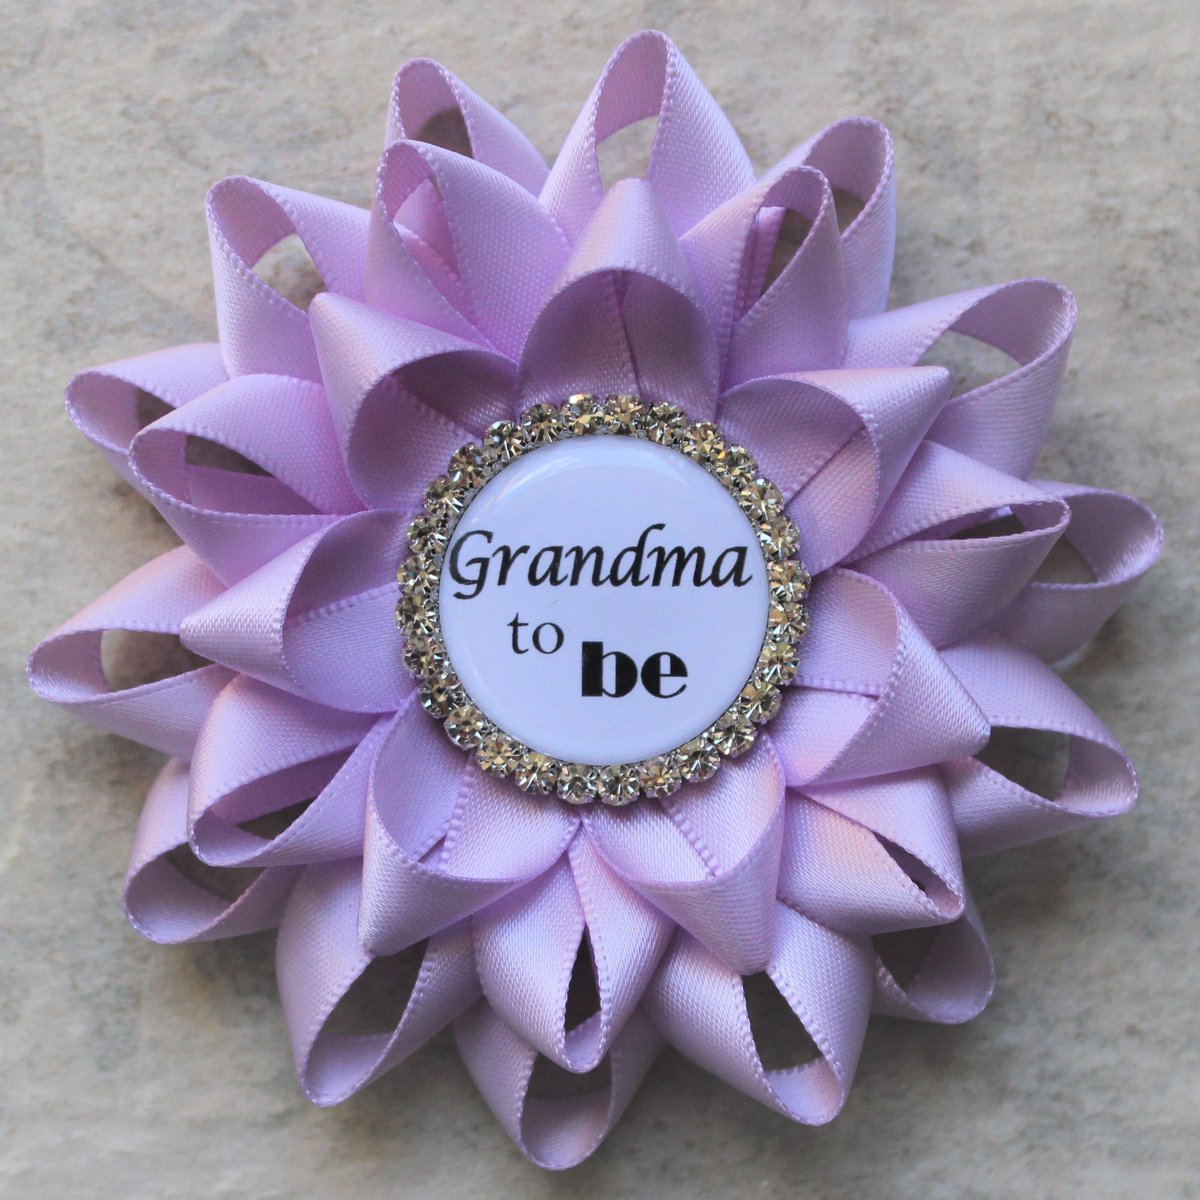 Lavender Baby Shower Decorations, Light Purple Baby Girl Shower, Grandma to Be Pin, Girl Baby Shower Pins, Orchid, Lilac  #store #shopsmall #sale #shopping #etsy #etsyshop #shop